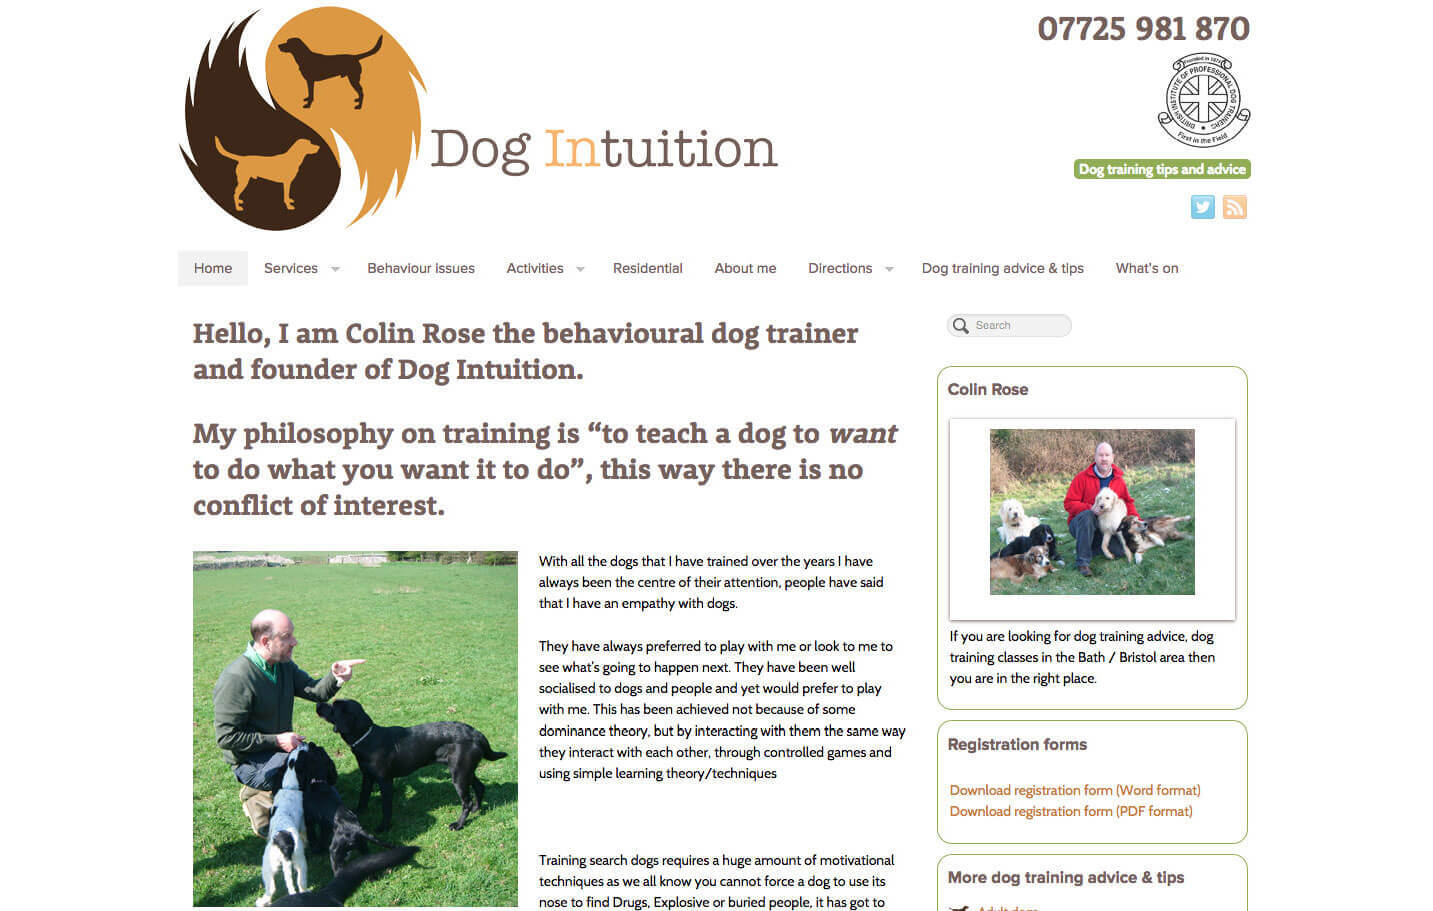 Dog Intuition - Home page